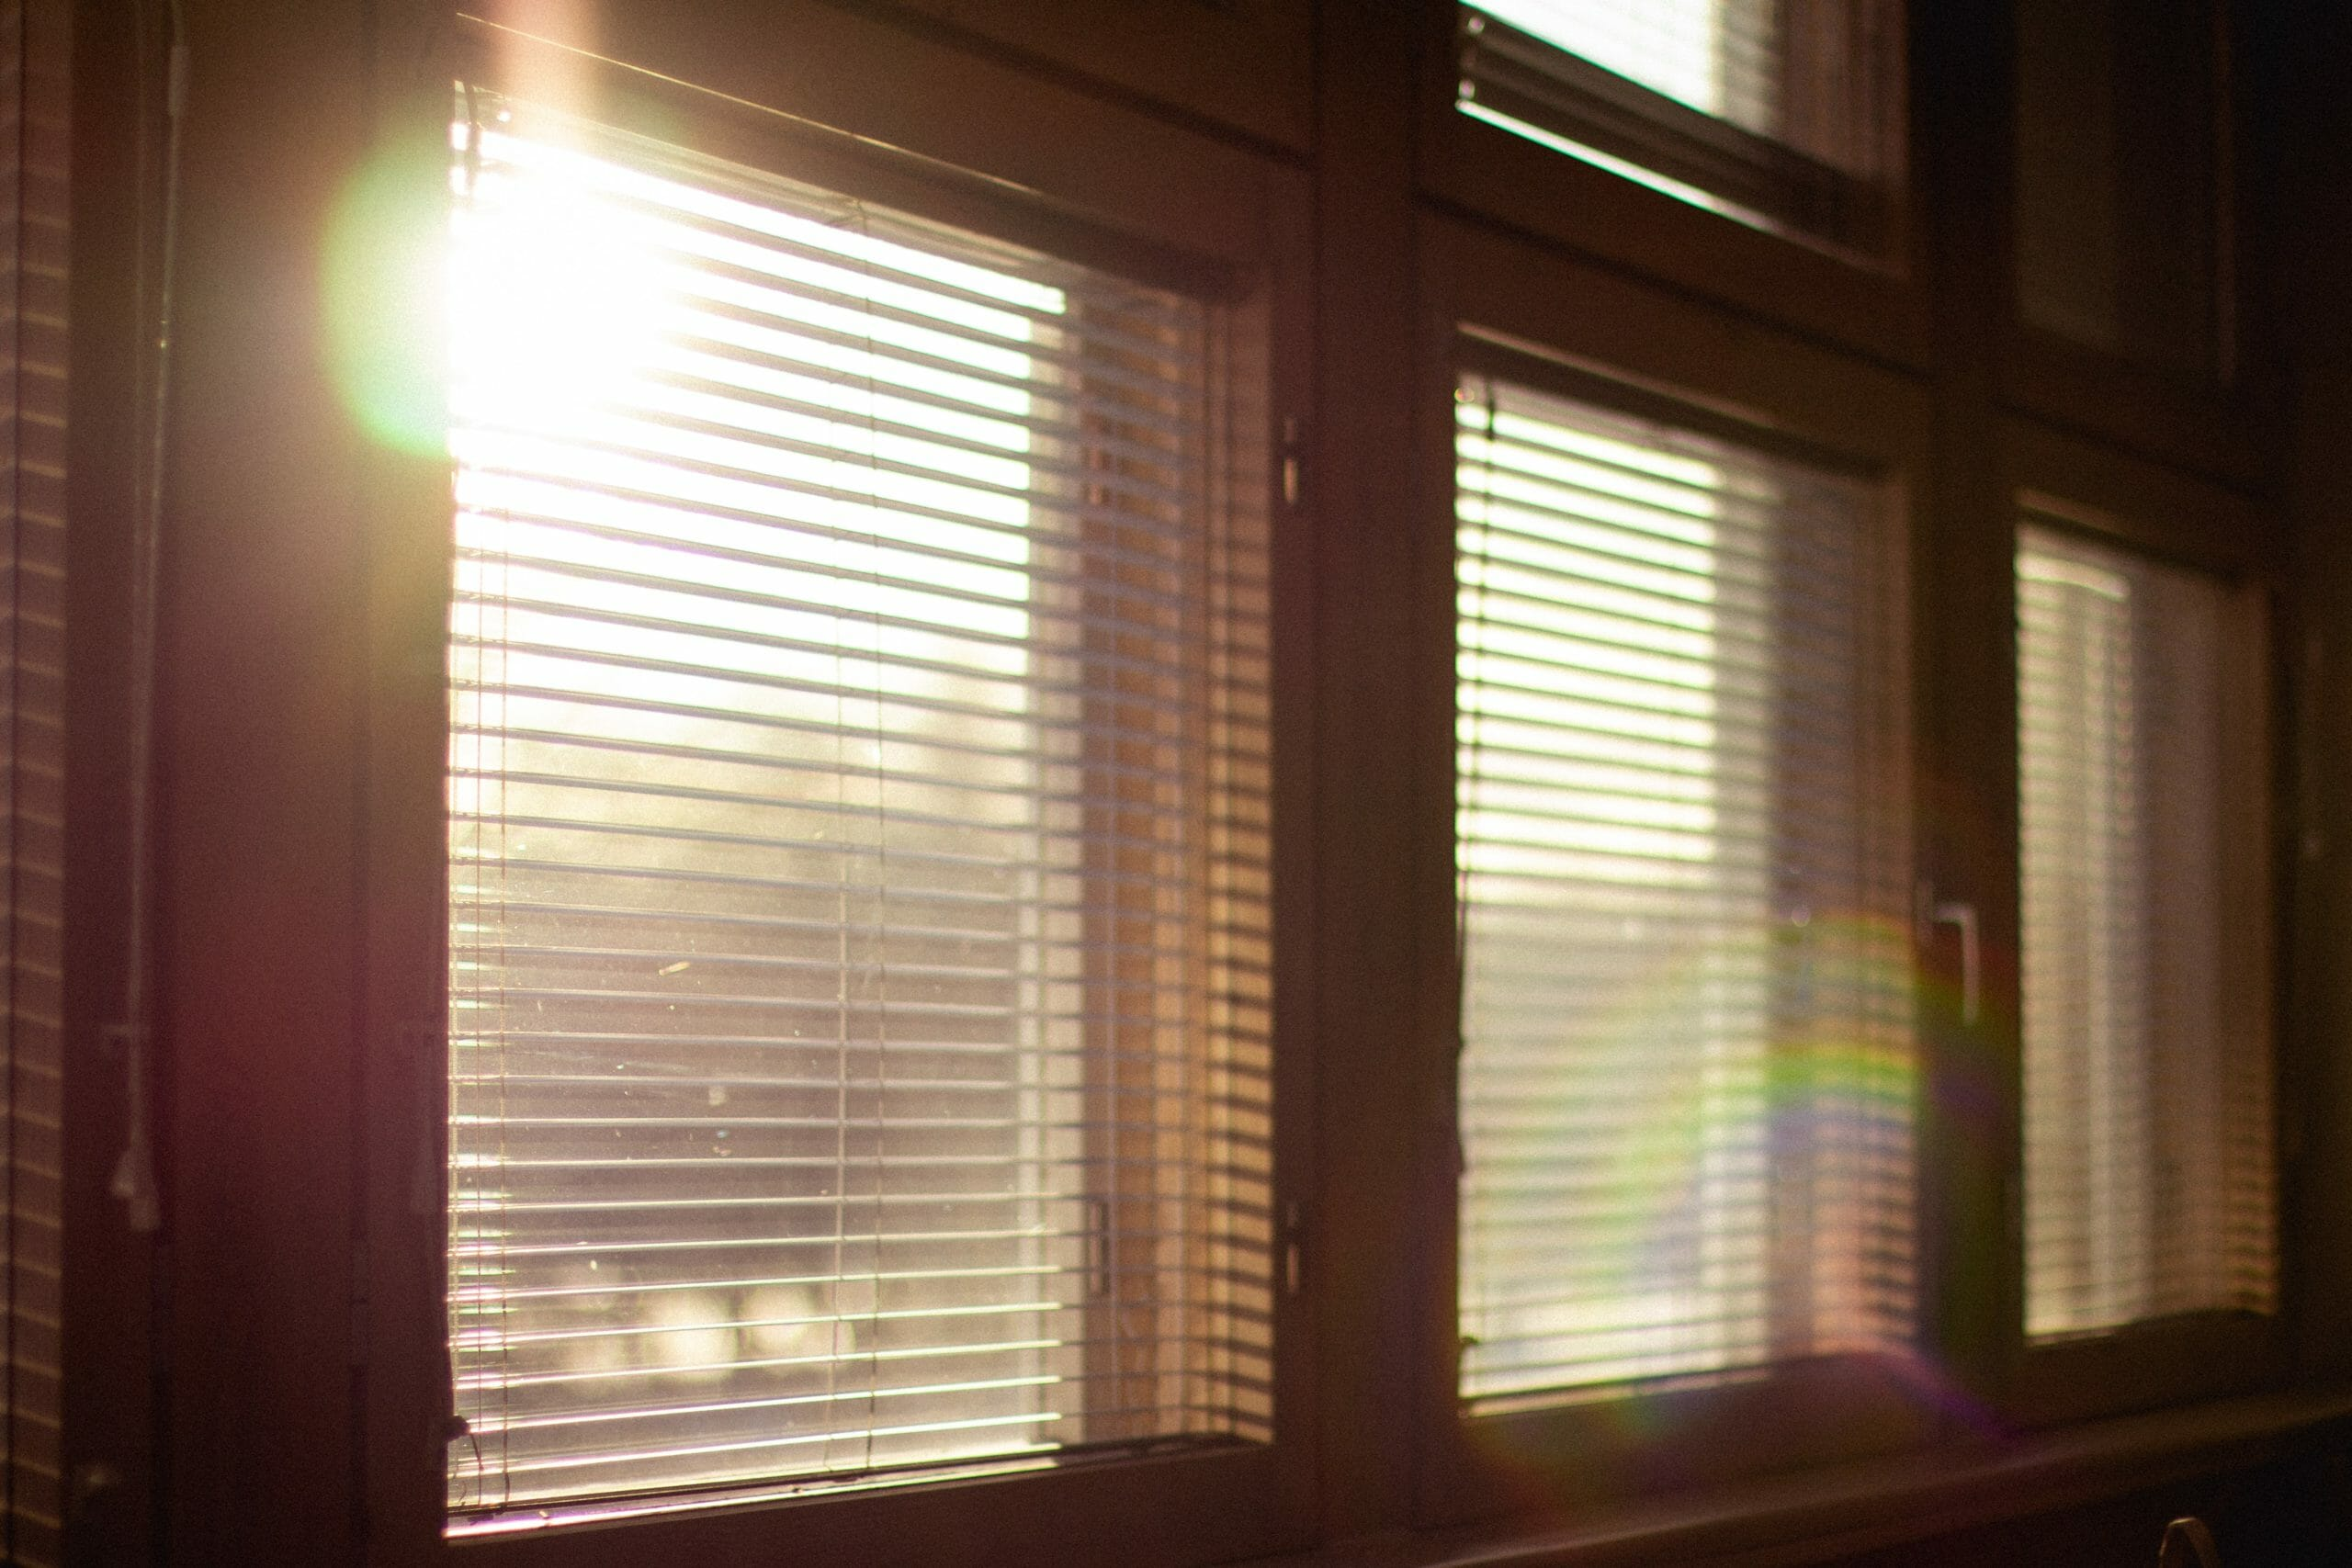 Window blinds with sun shining in.